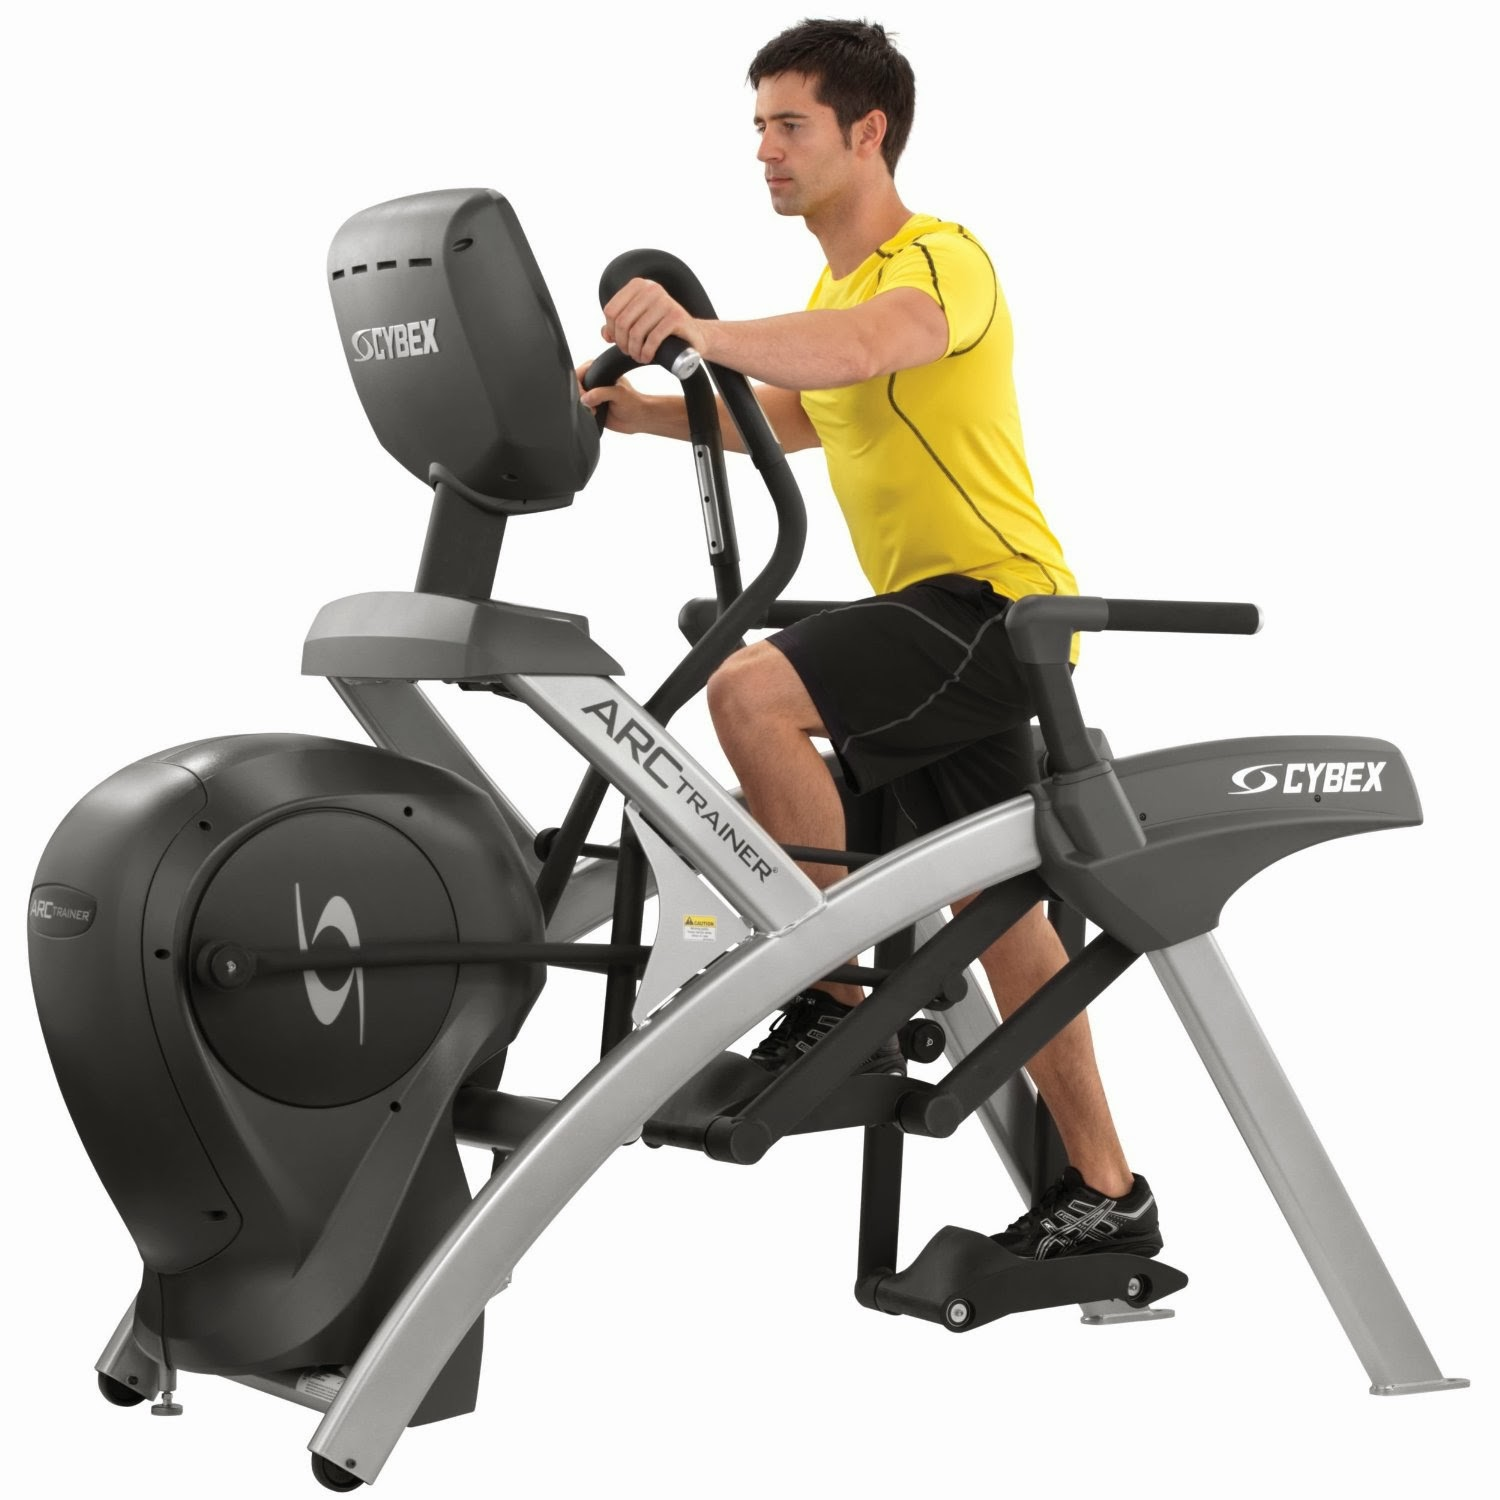 Cybex 770AT Arc Trainer Image